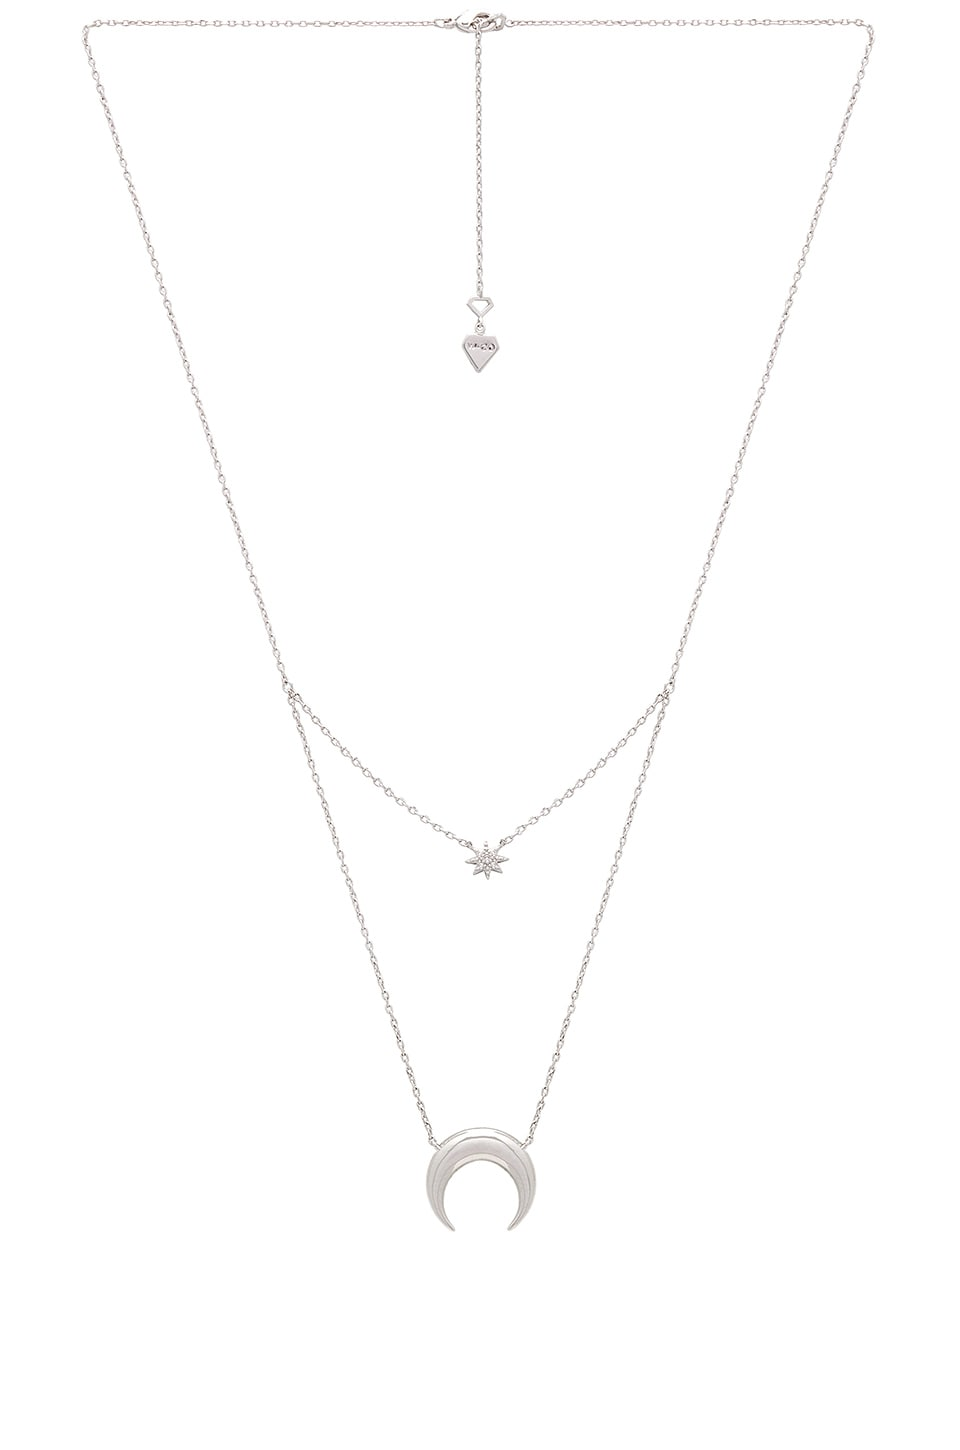 Wanderlust + Co Crescent & Star Layered Necklace in Silver